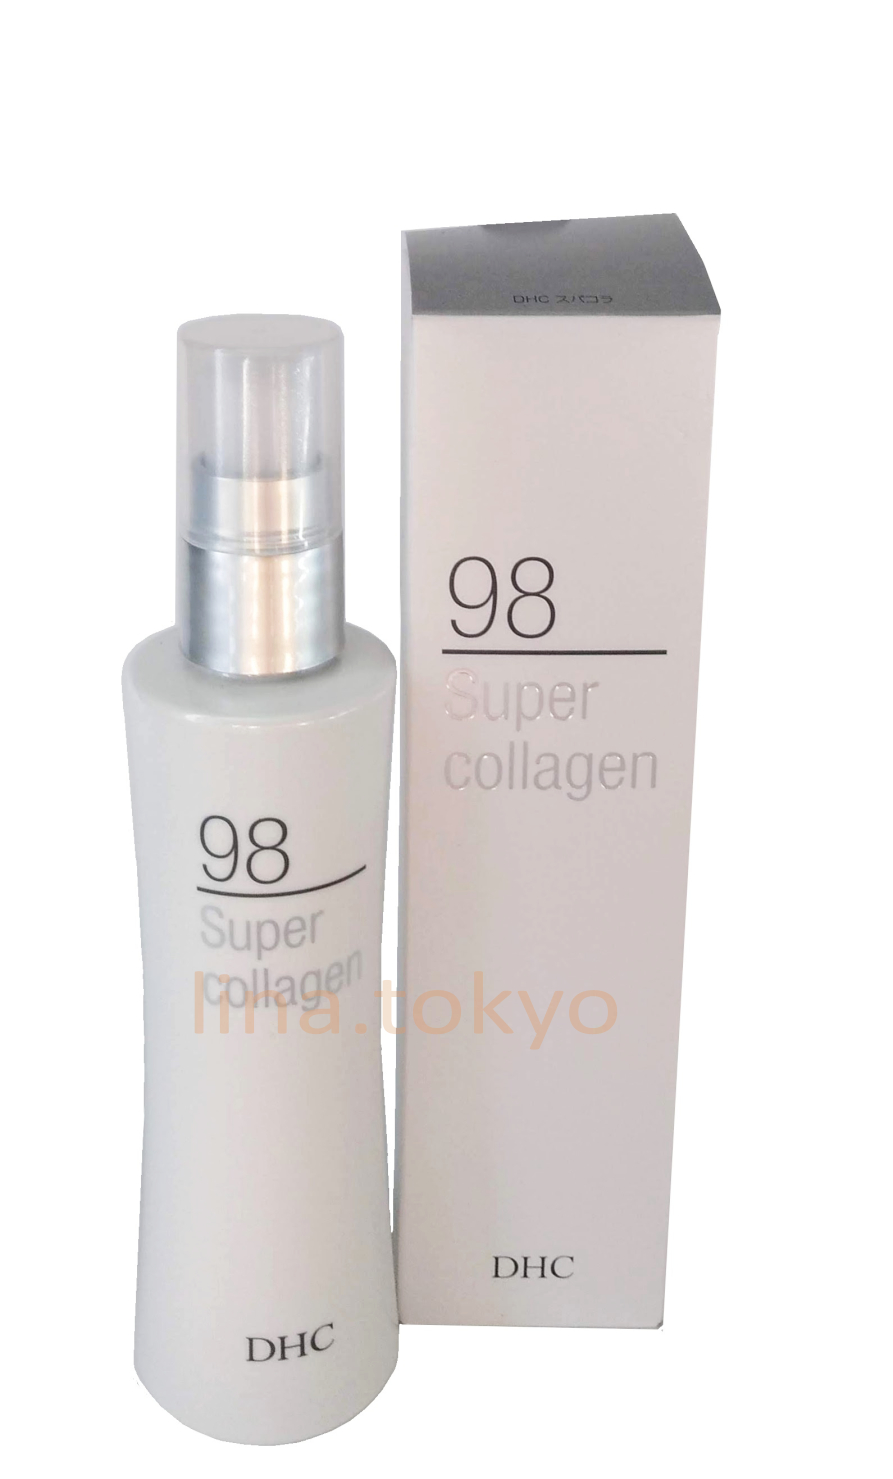 D1437- DHC super collagen essence 100ml